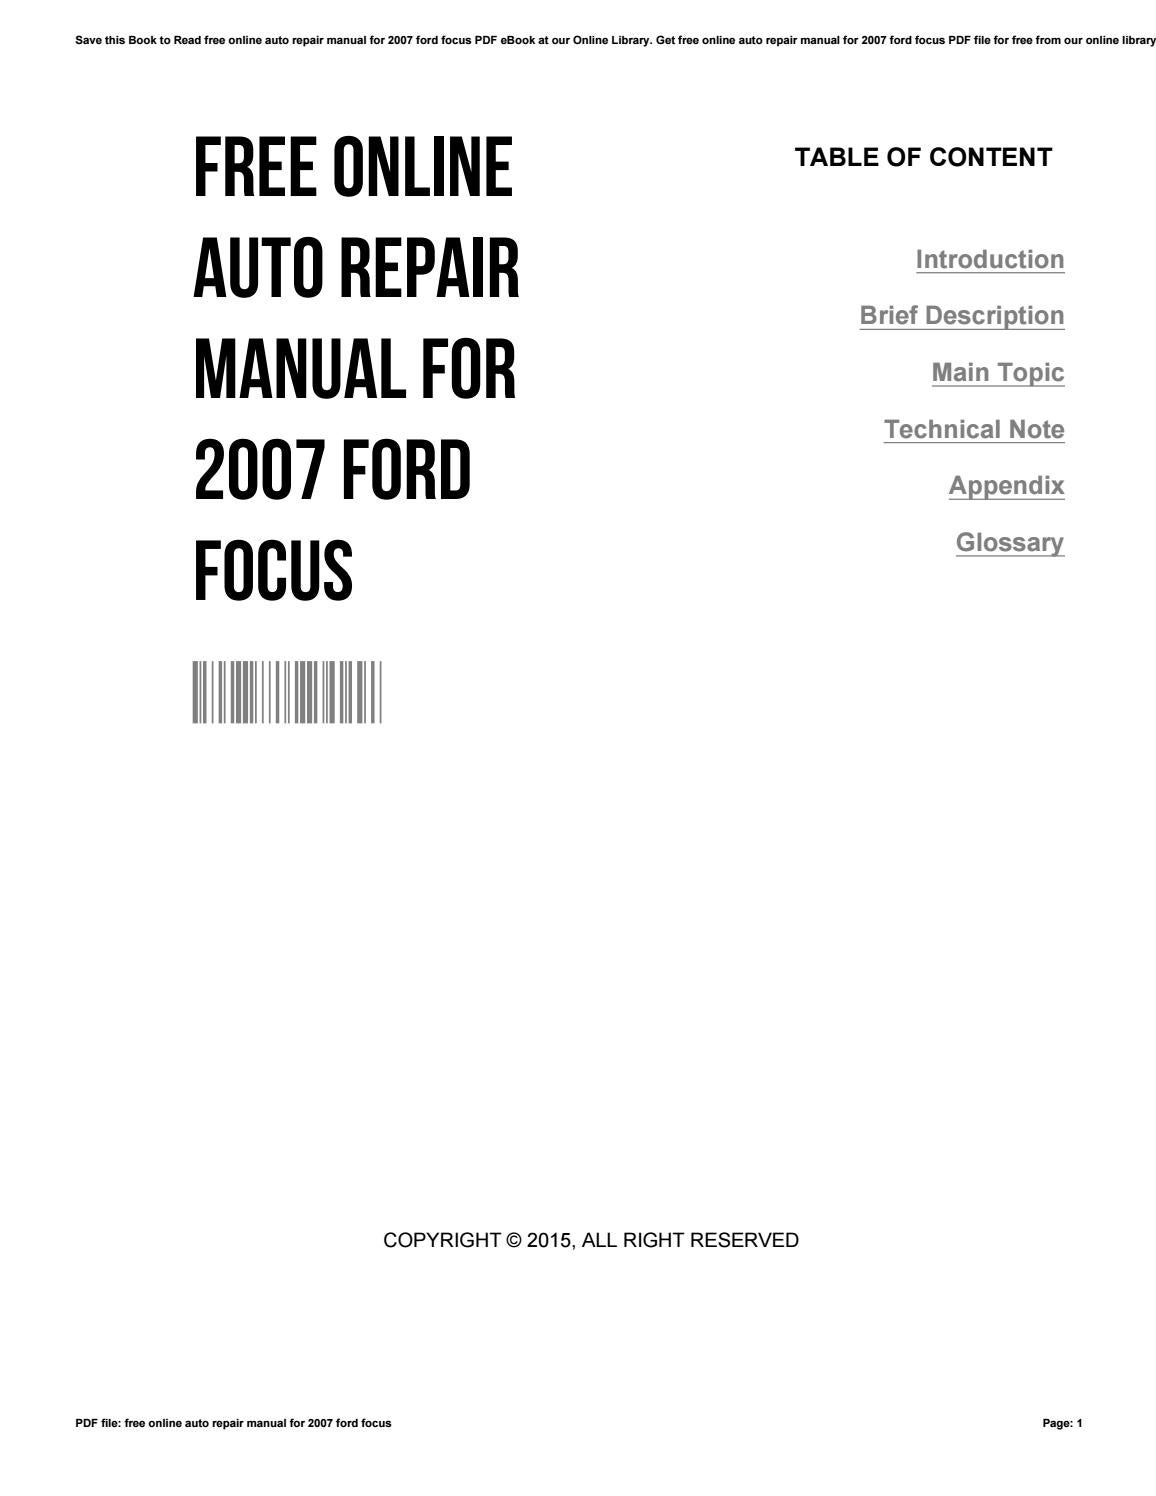 Free online auto repair manual for 2007 ford focus by RogerLopez2682 - issuu